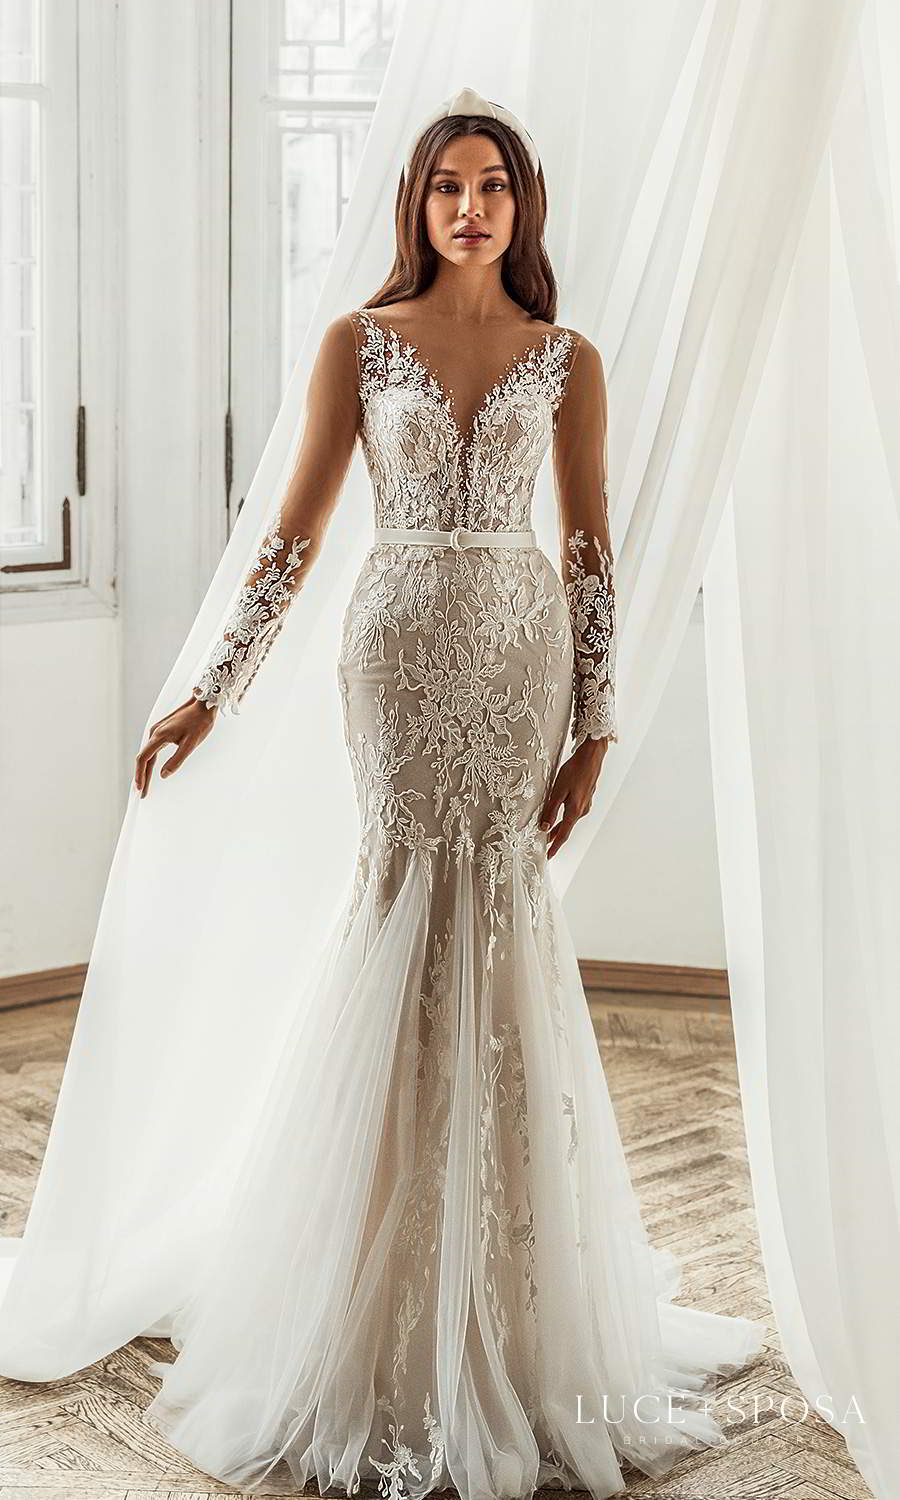 luce sposa 2021 shades of couture bridal long sleeves v neckline fully embellished fit flare wedding dress chapel train (peyton) mv